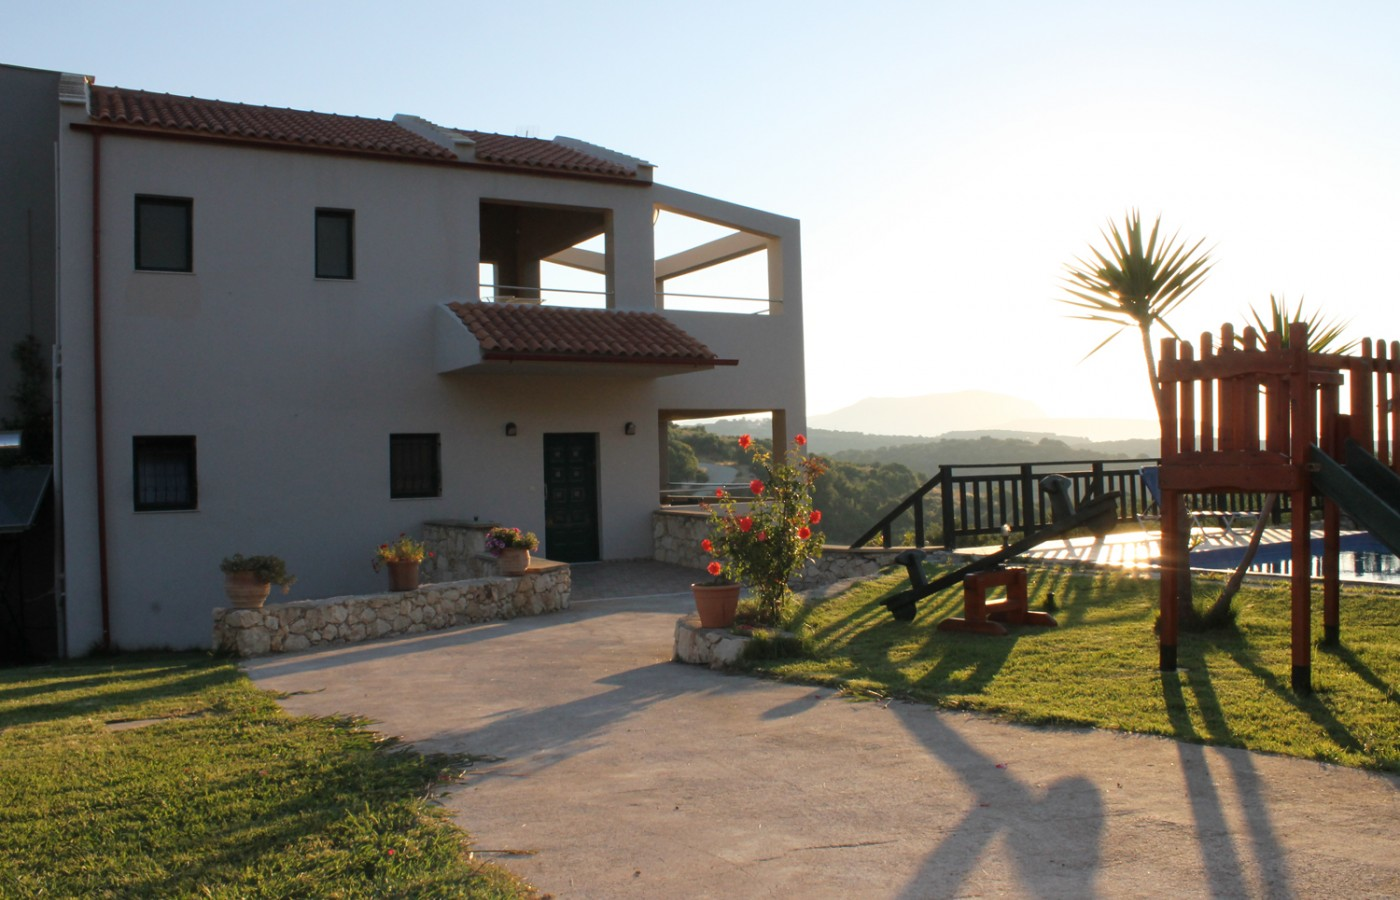 Villas-almyrida - Family villas with panoramic view of Almyrida village and almirida beach